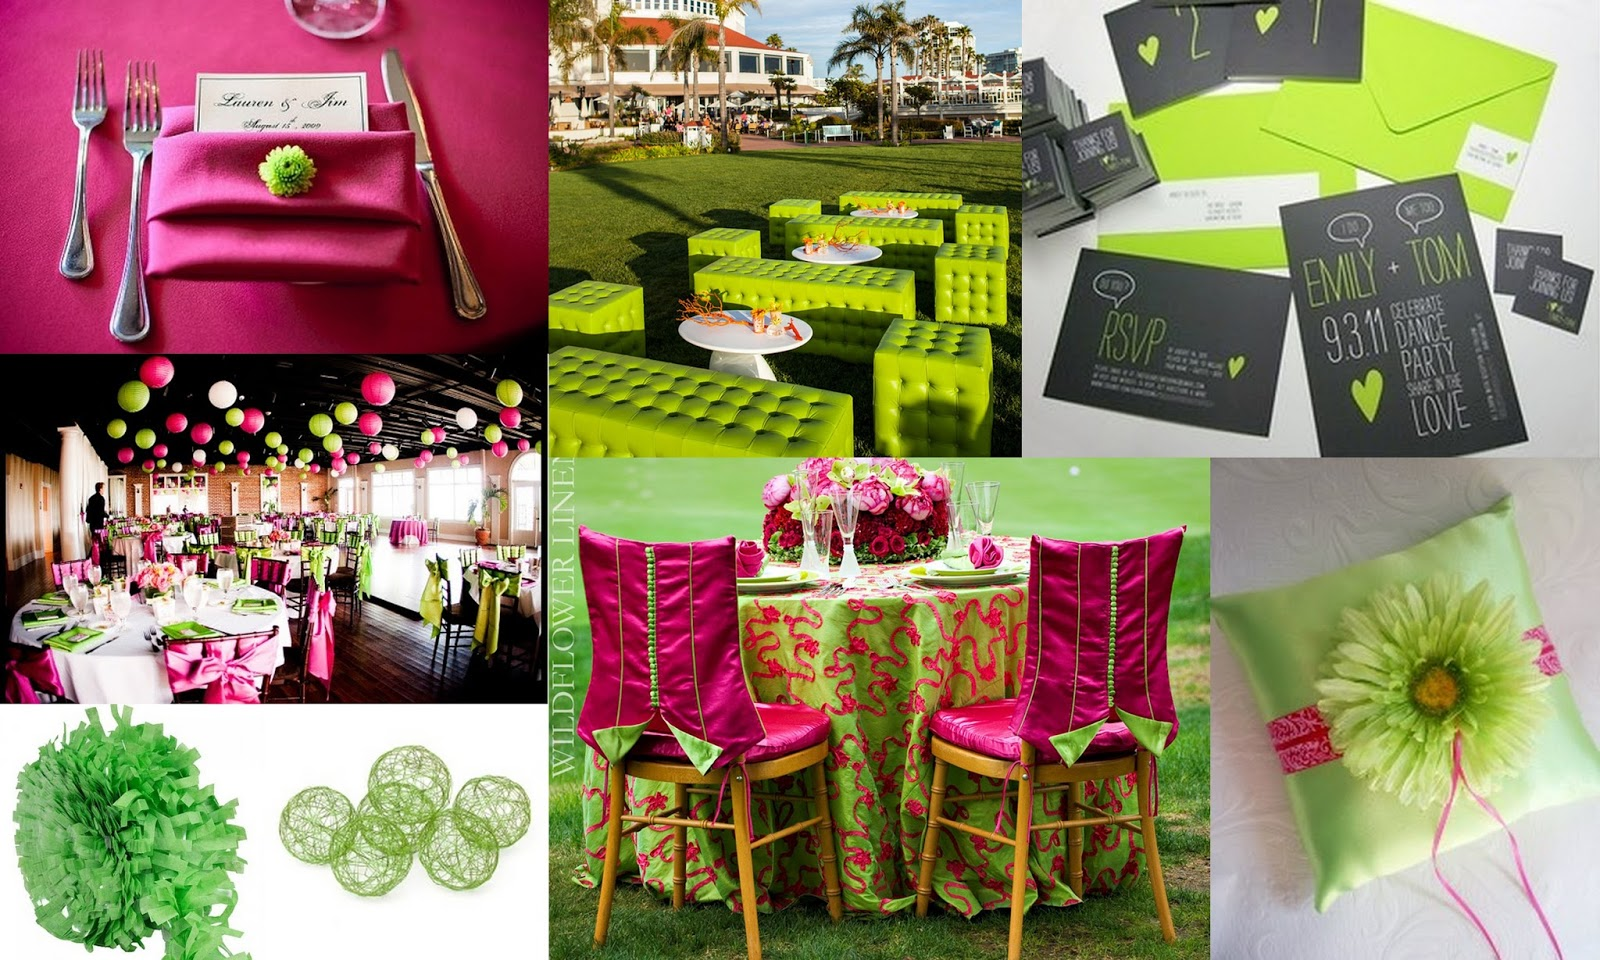 Calgary Wedding Blog How To Choose The Right Decorations For Your